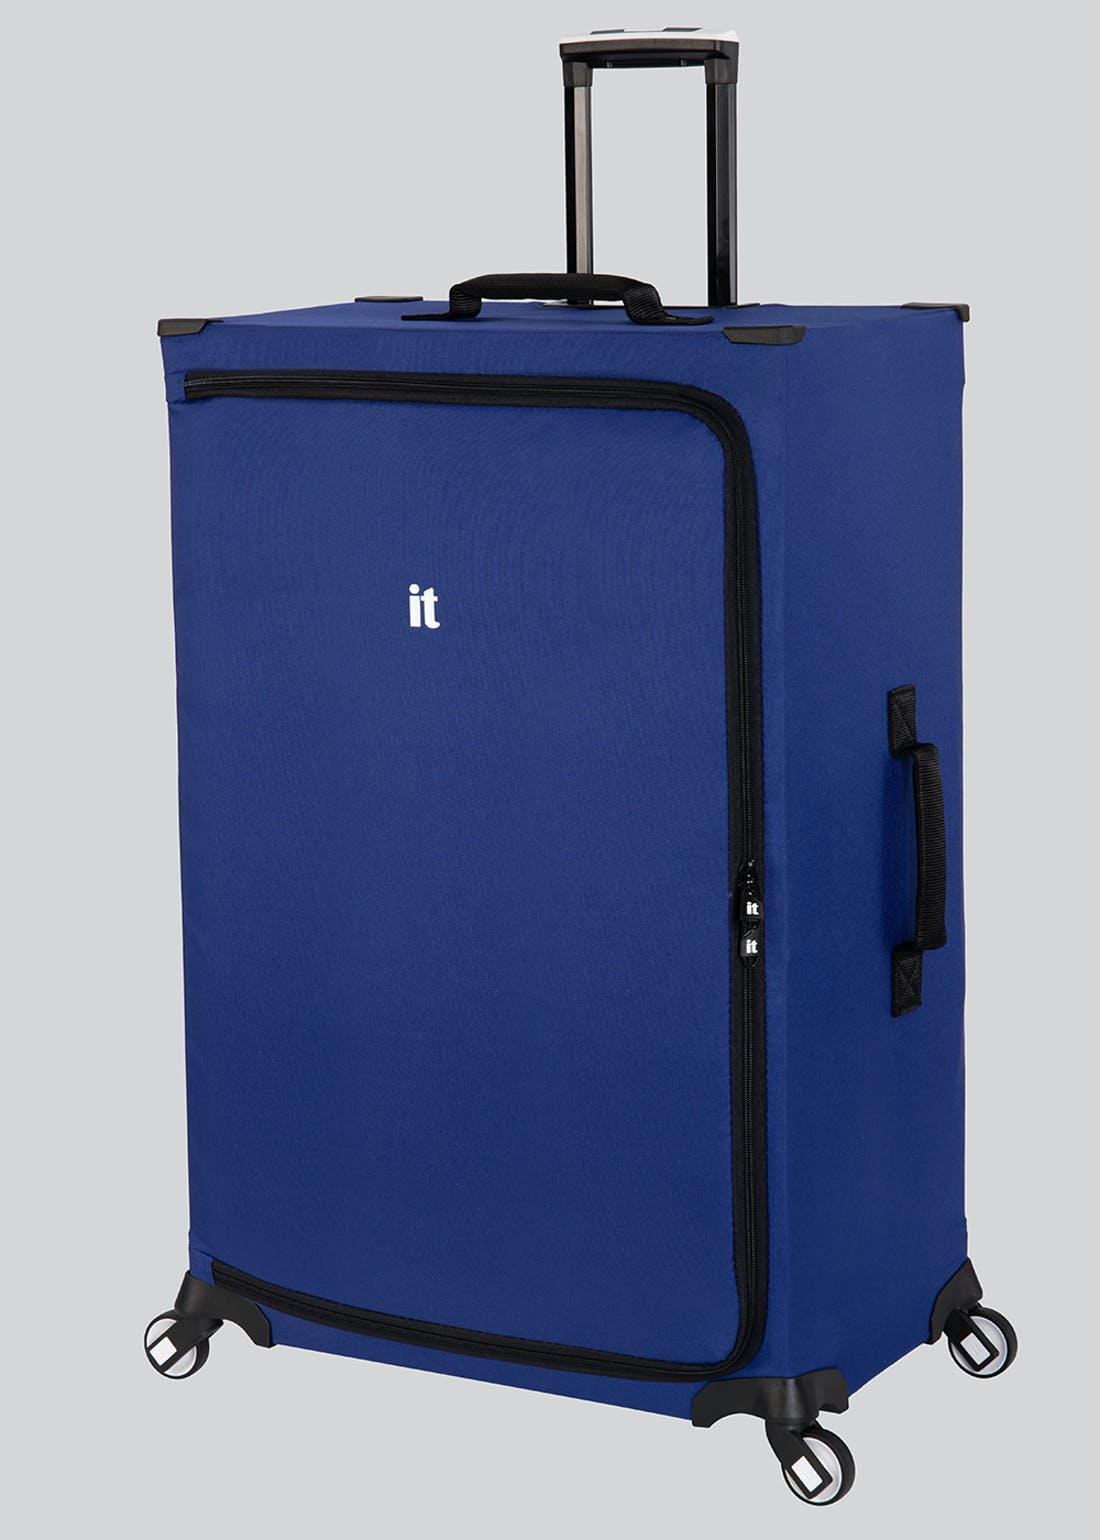 IT Luggage MaXpace Suitcase